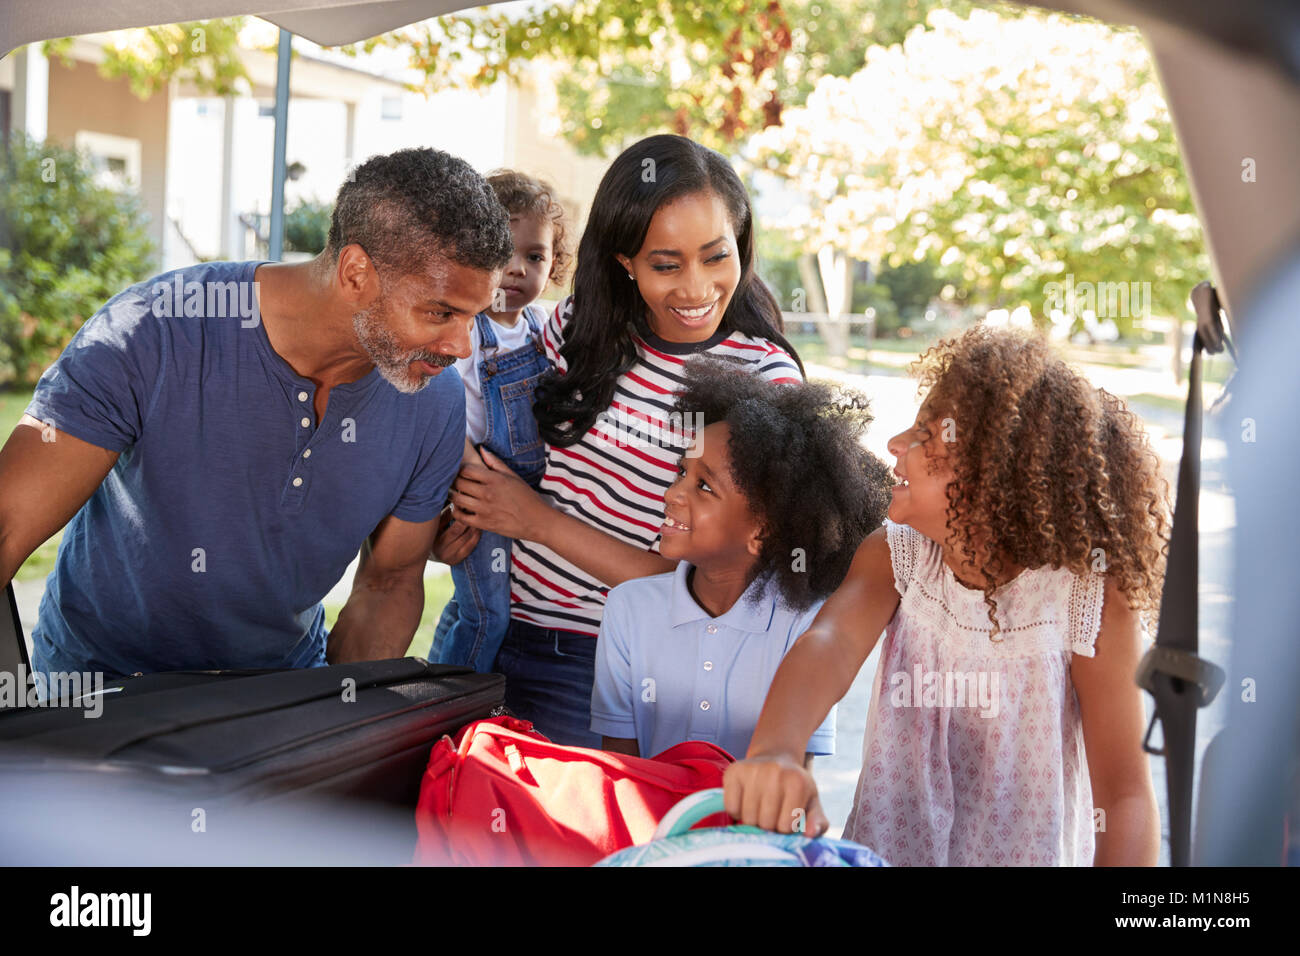 Family Leaving For Vacation Loading Luggage Into Car - Stock Image